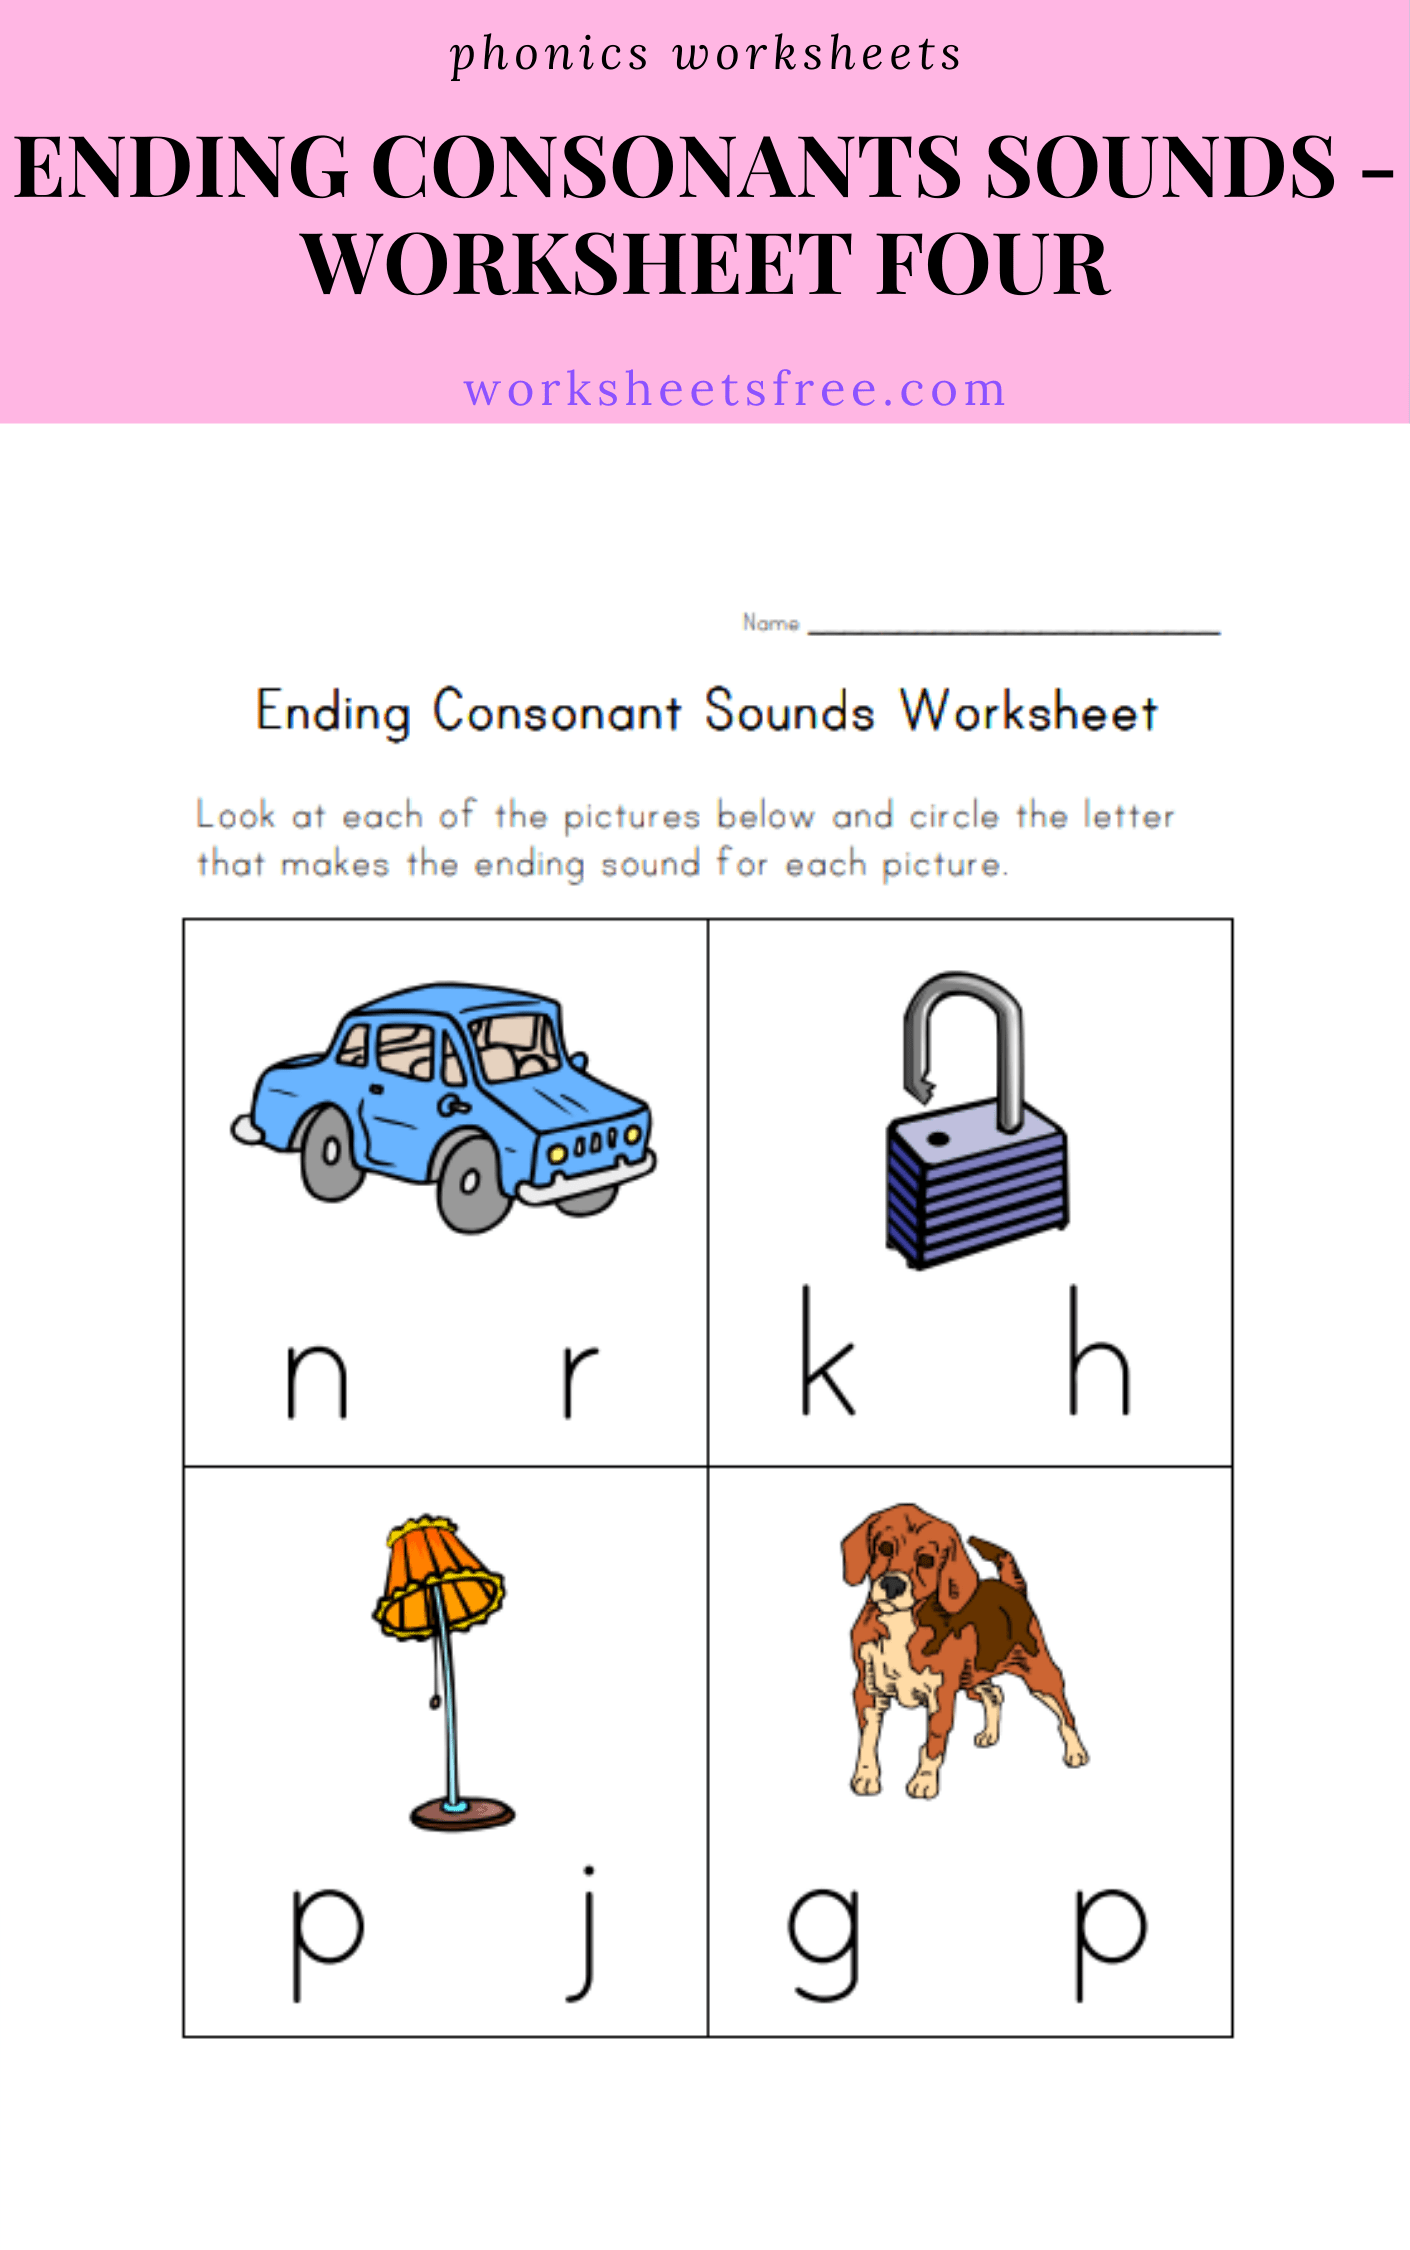 Ending Consonants Sounds Worksheet Four